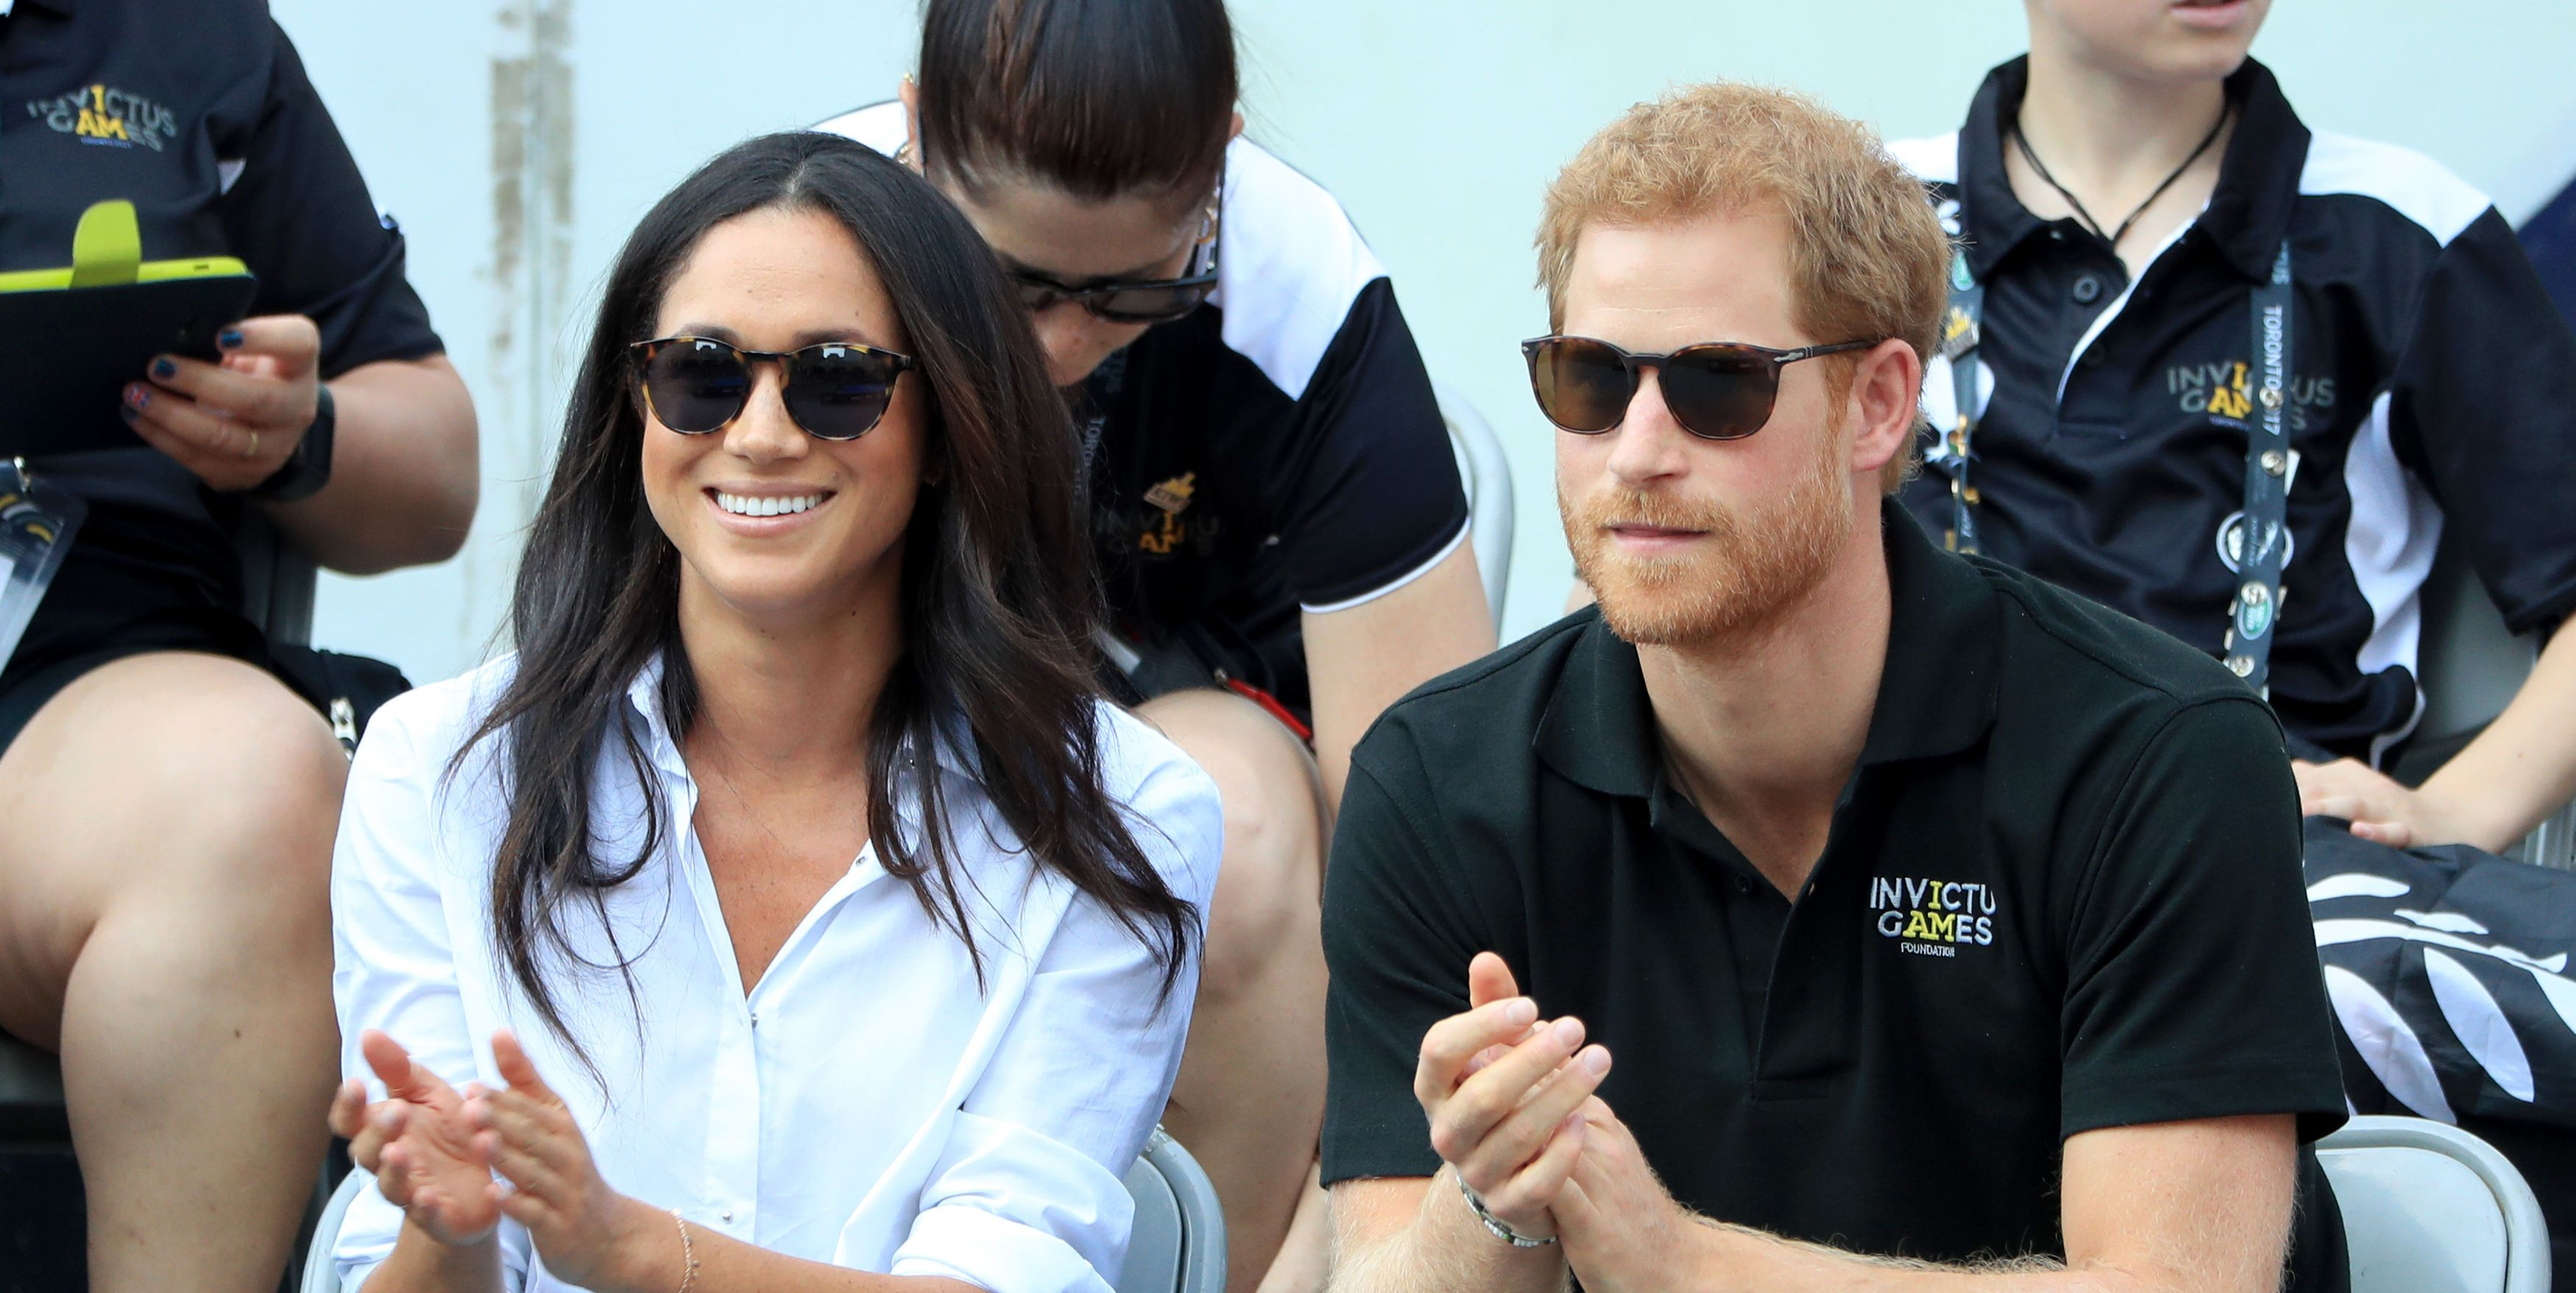 Shop Meghan Markle's Perfect, Didn't-Try-Too-Hard Date Outfit